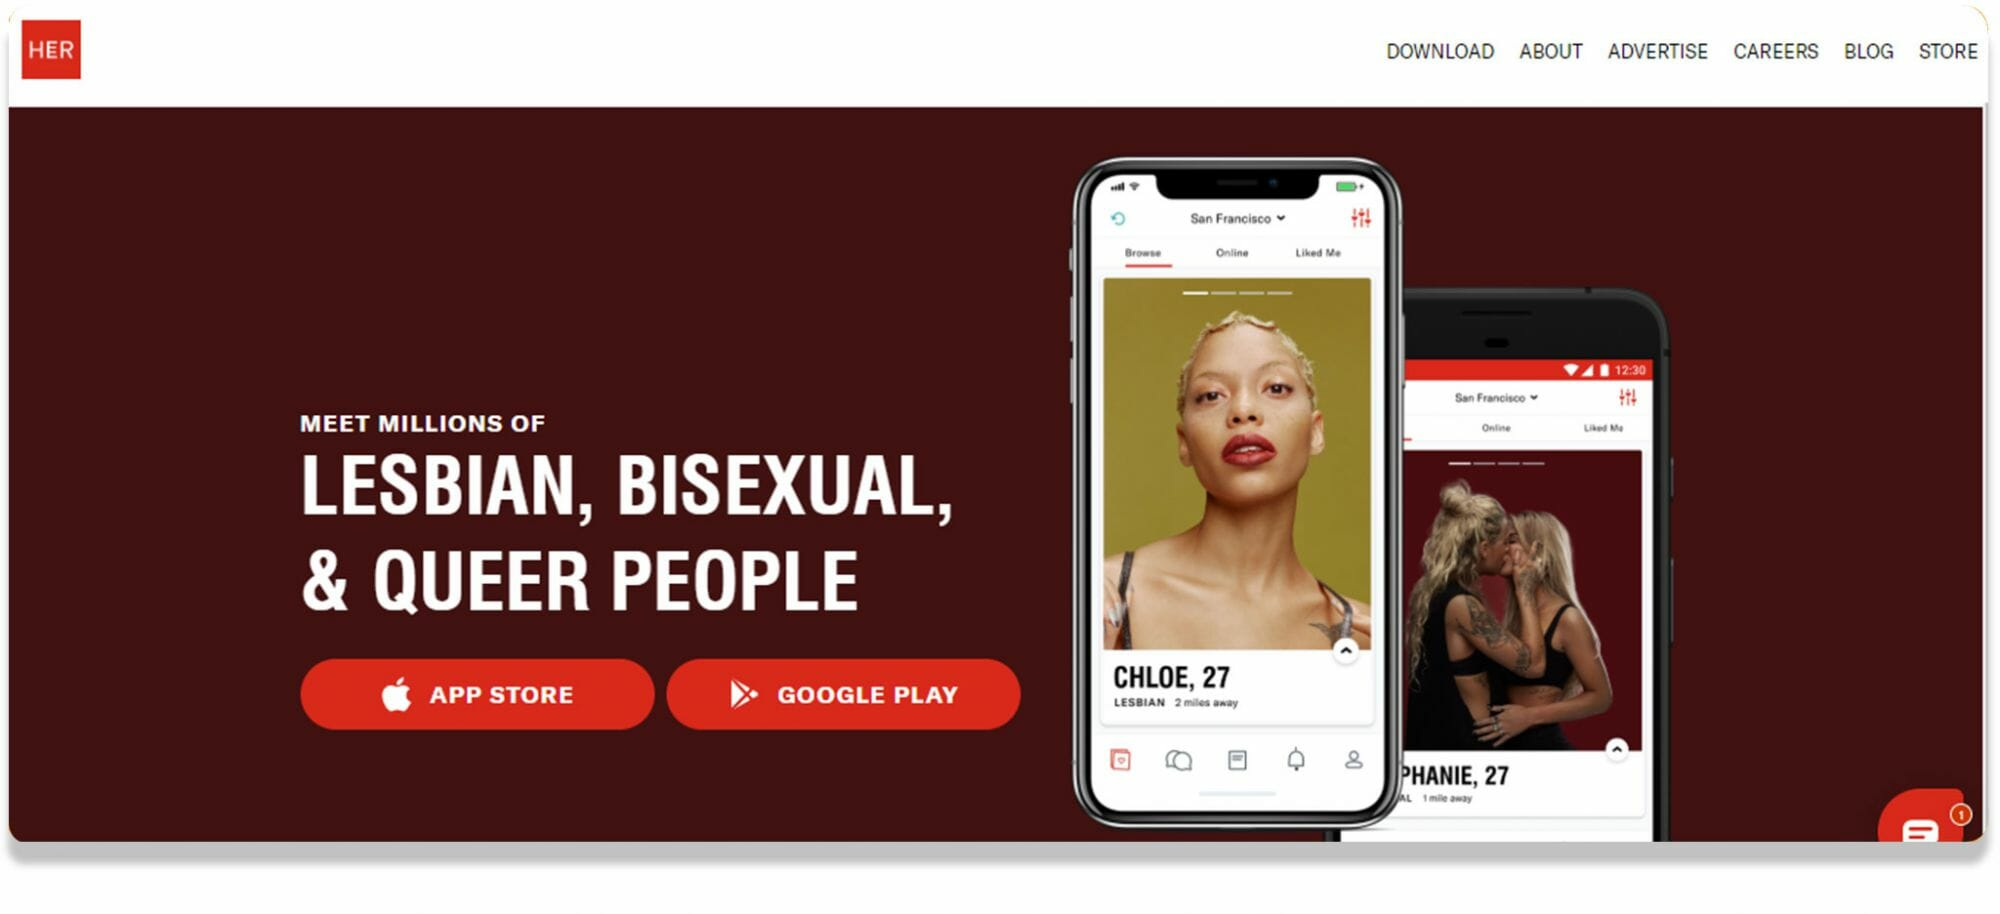 Her Gay And Lesbian App